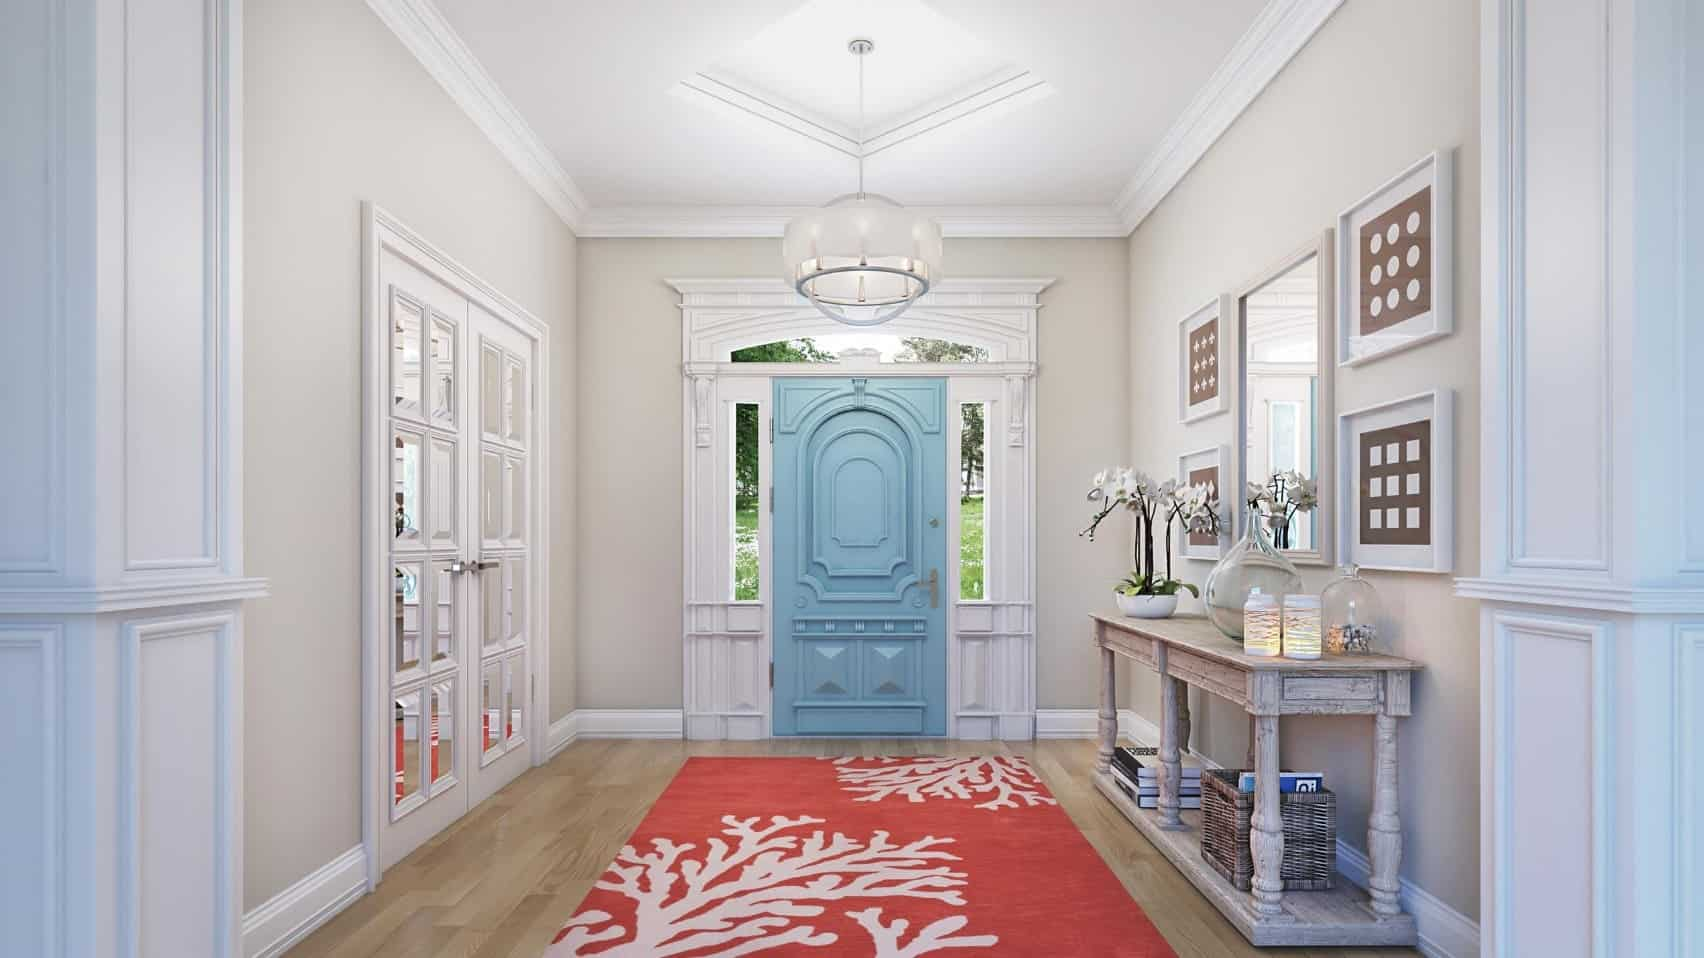 Neutral foyer accented with a pastel blue door and red runner that lays on hardwood flooring. It is designed with minimalist wall arts and white mirror mounted on the light gray wall.